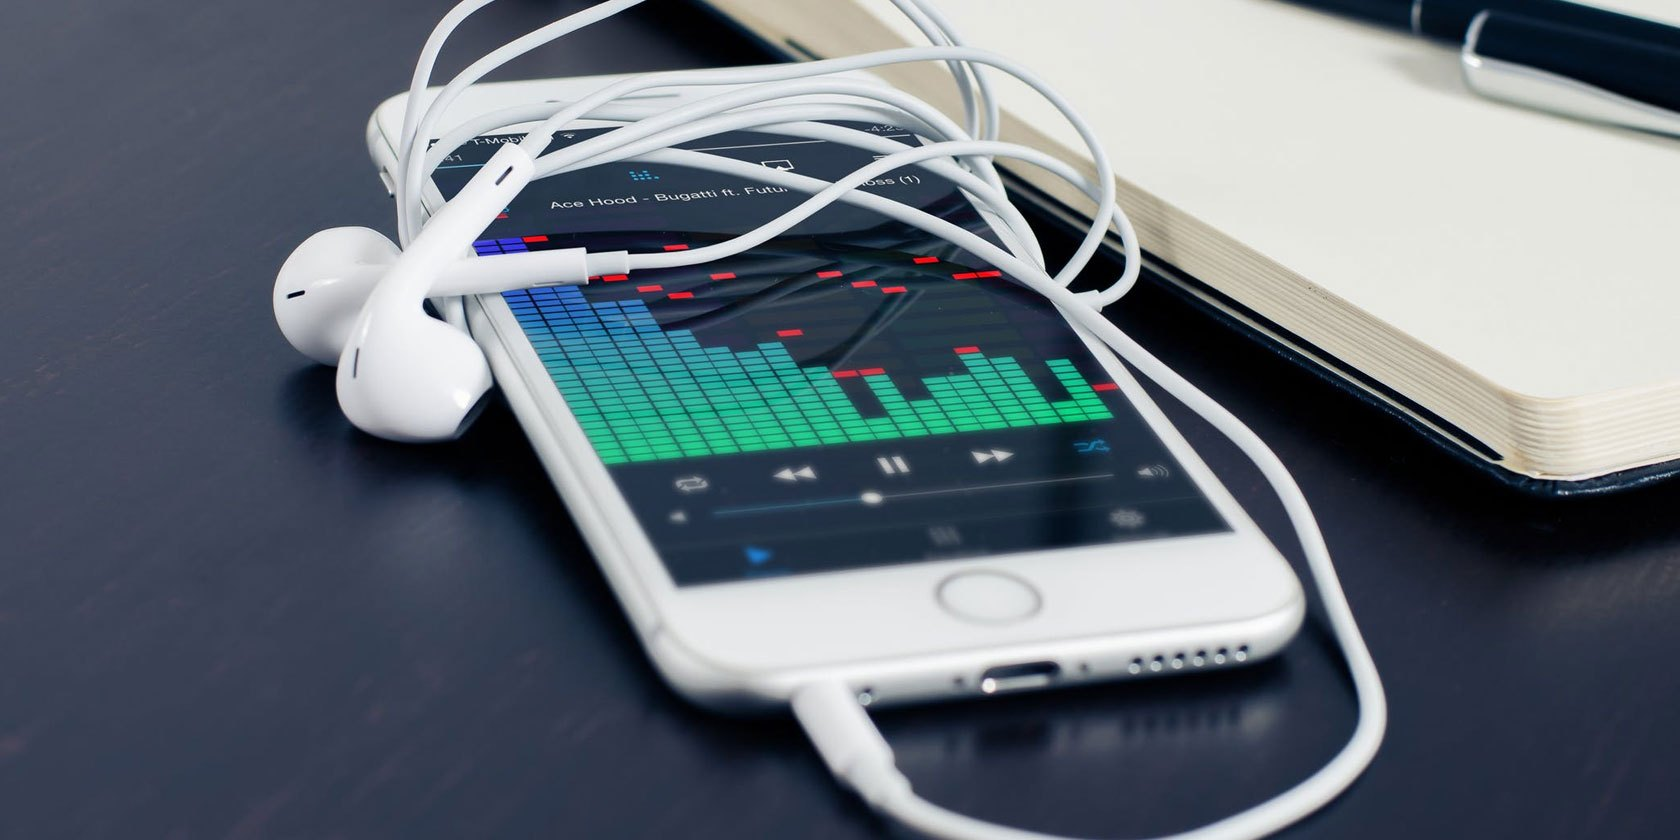 How to Play Hi-Res Audio on Your iPhone or iPad